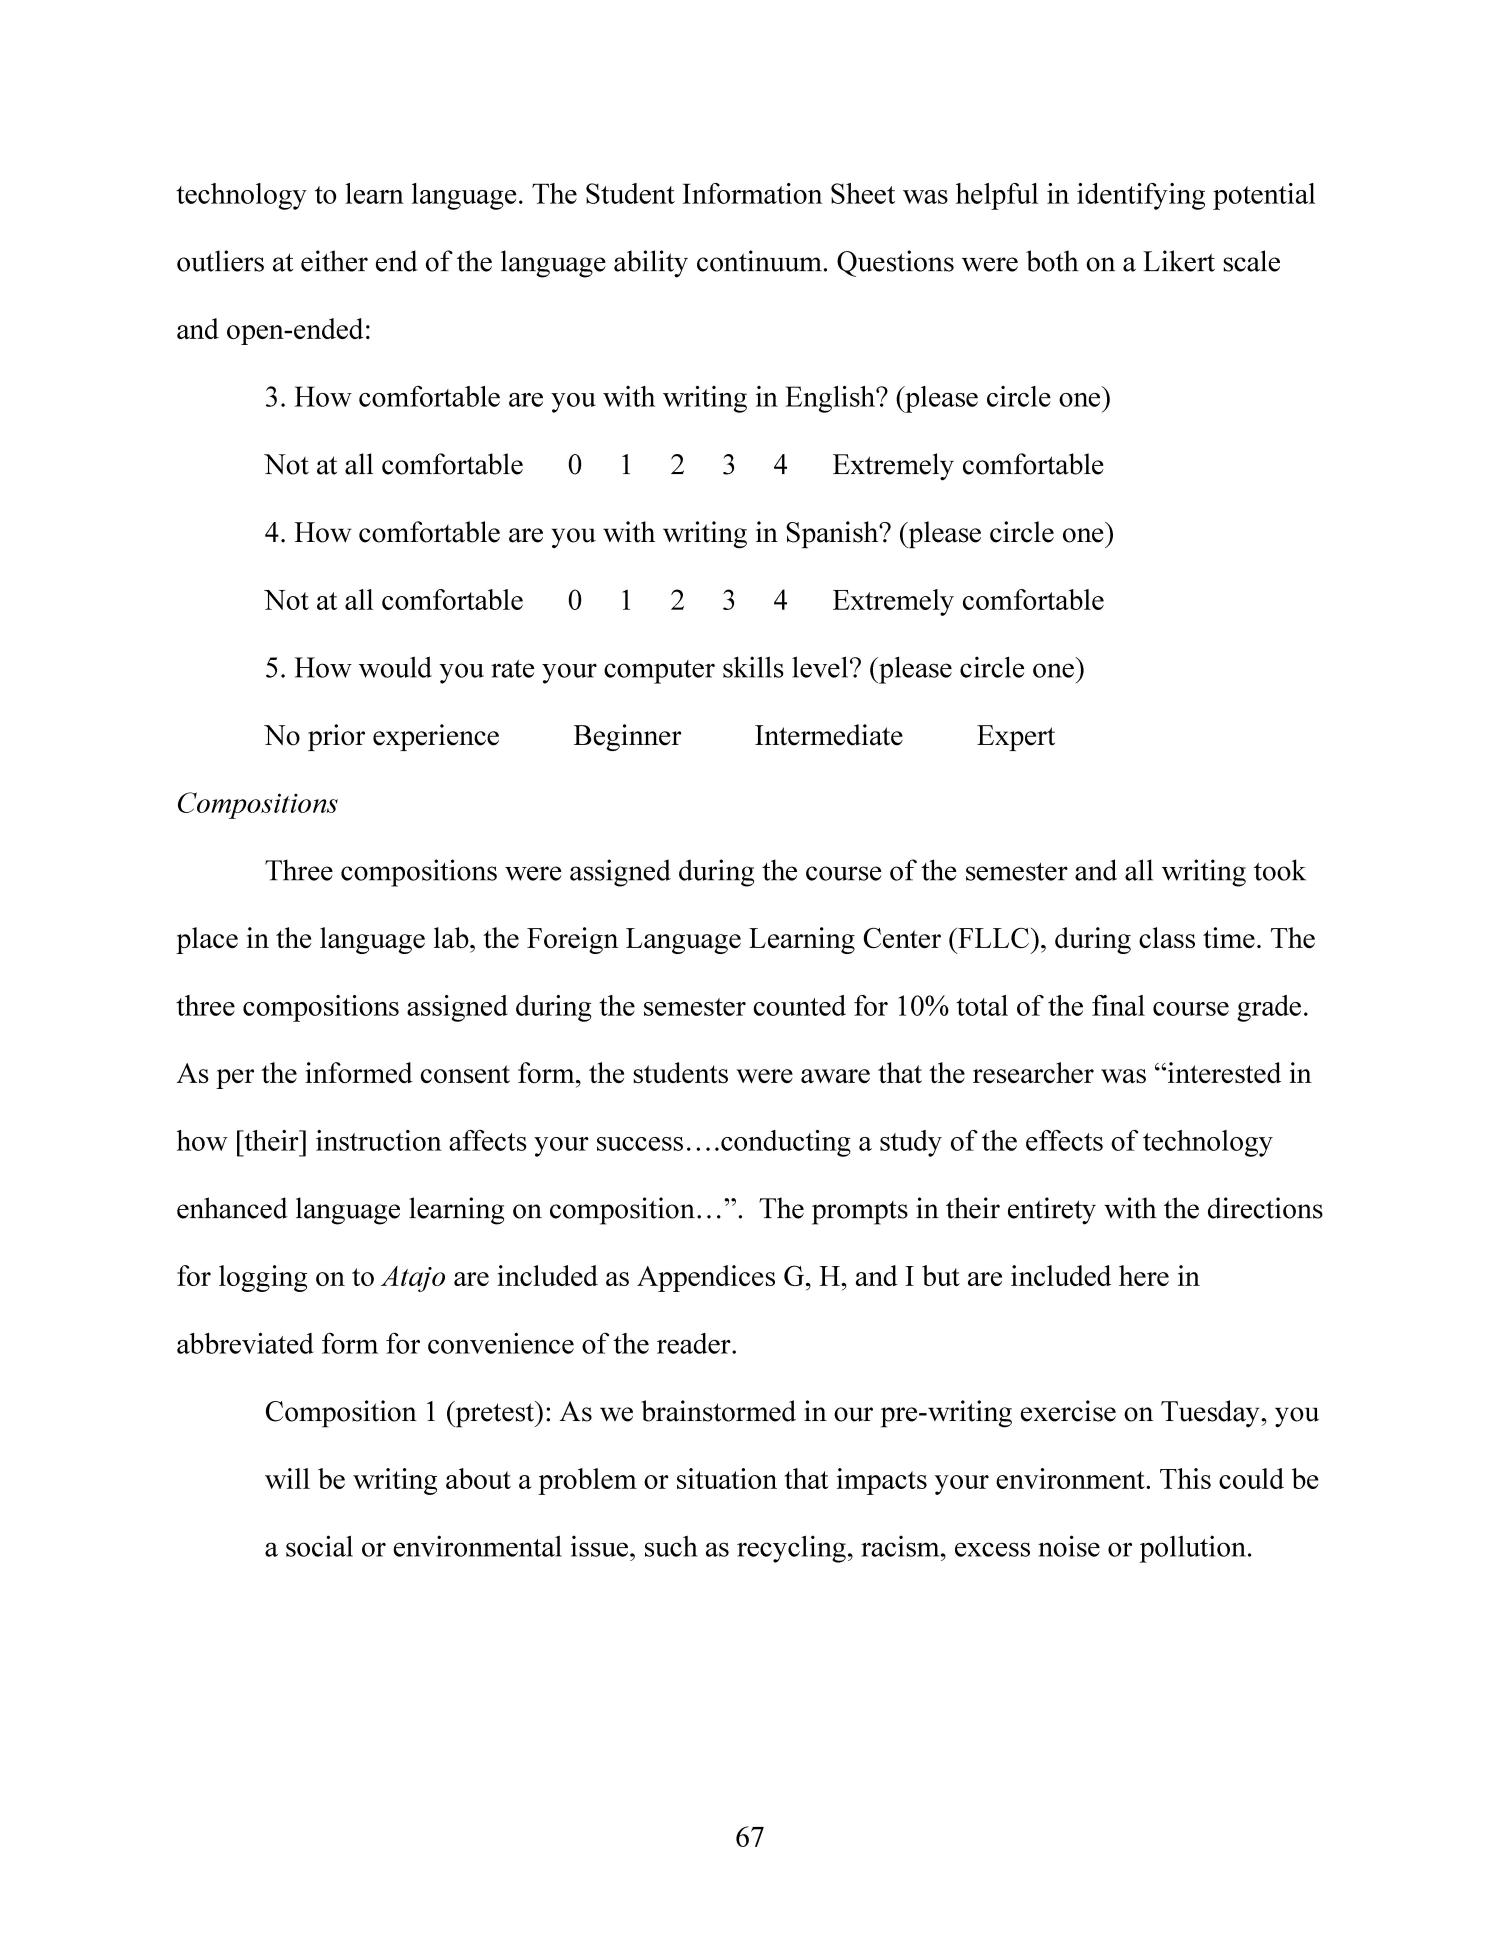 Effects of Technology-Enhanced Language Learning on Second Language Composition of University-Level Intermediate Spanish Students                                                                                                      67